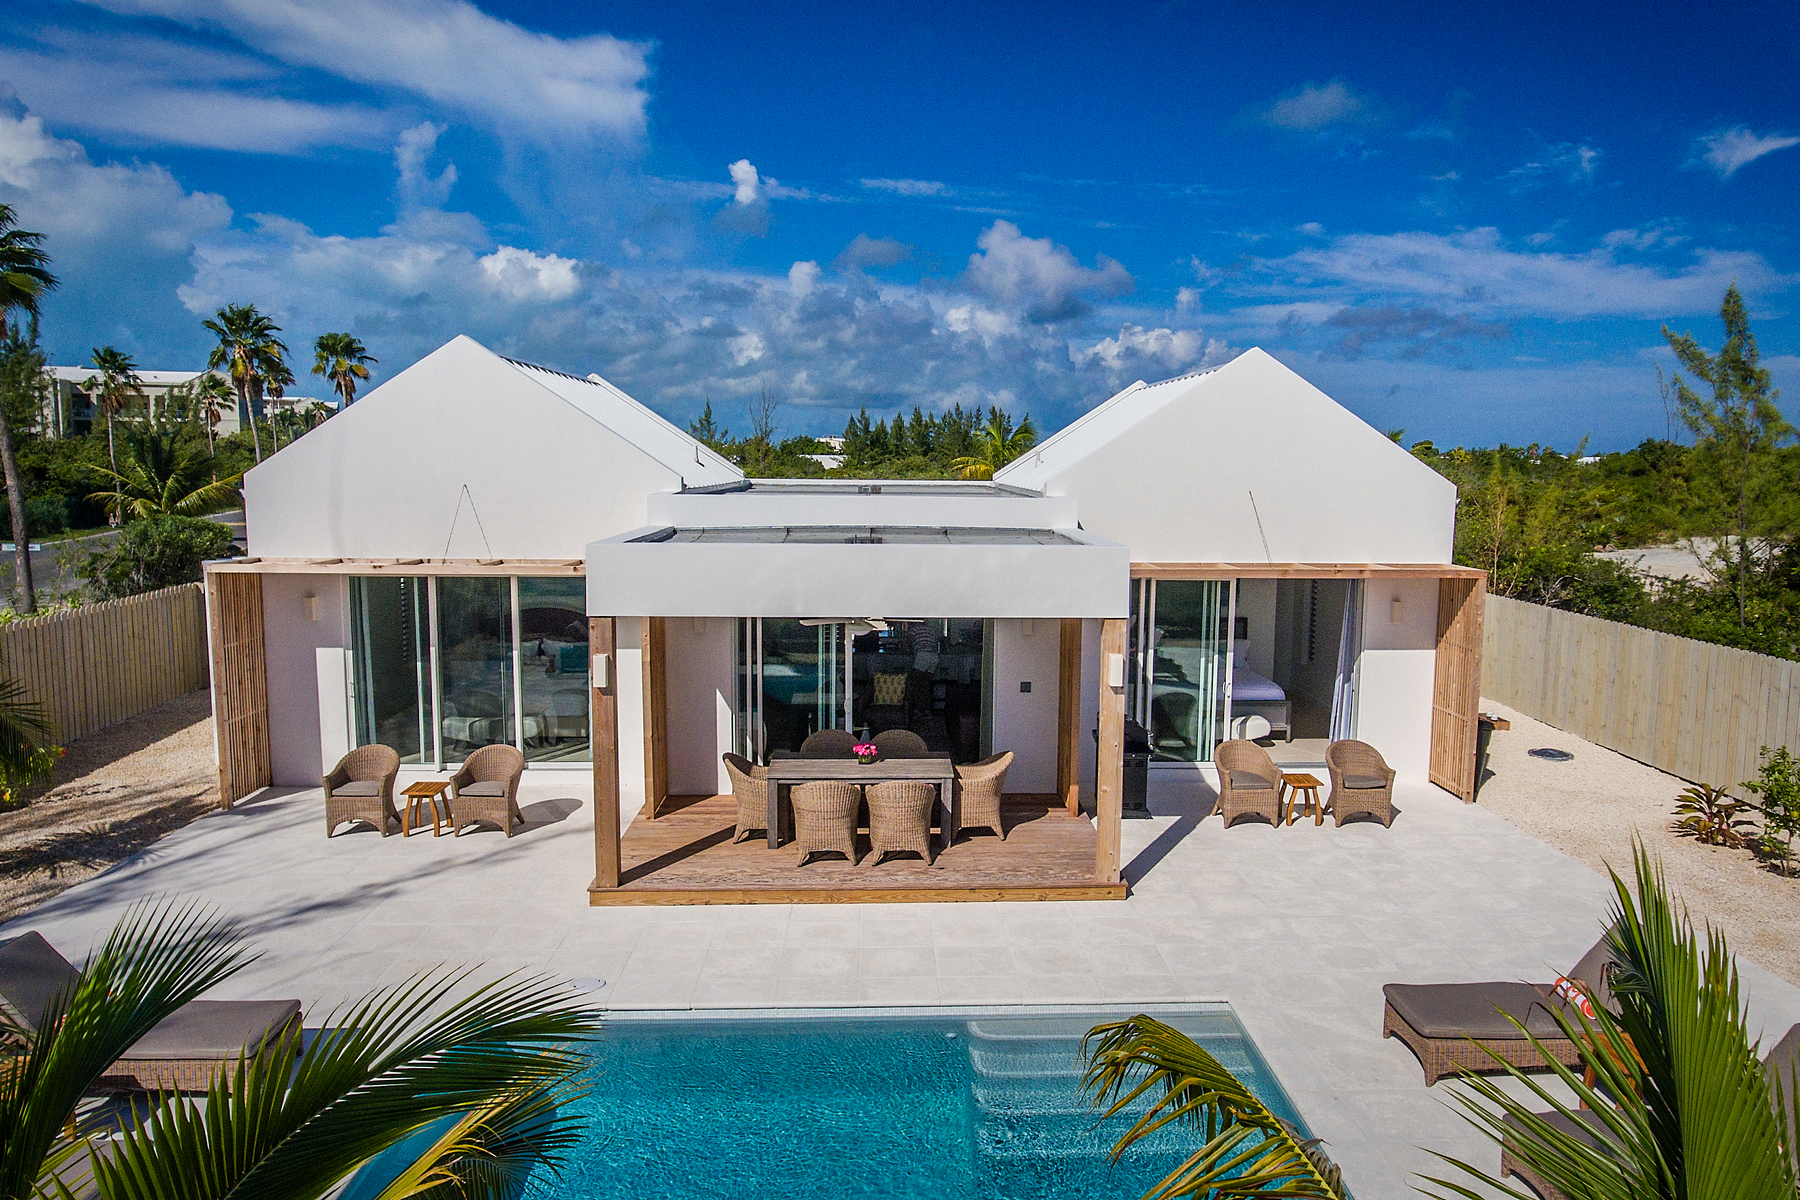 Single Family Home for Sale at Caicos Dream Gardenview Leeward, Providenciales, TCI Turks And Caicos Islands